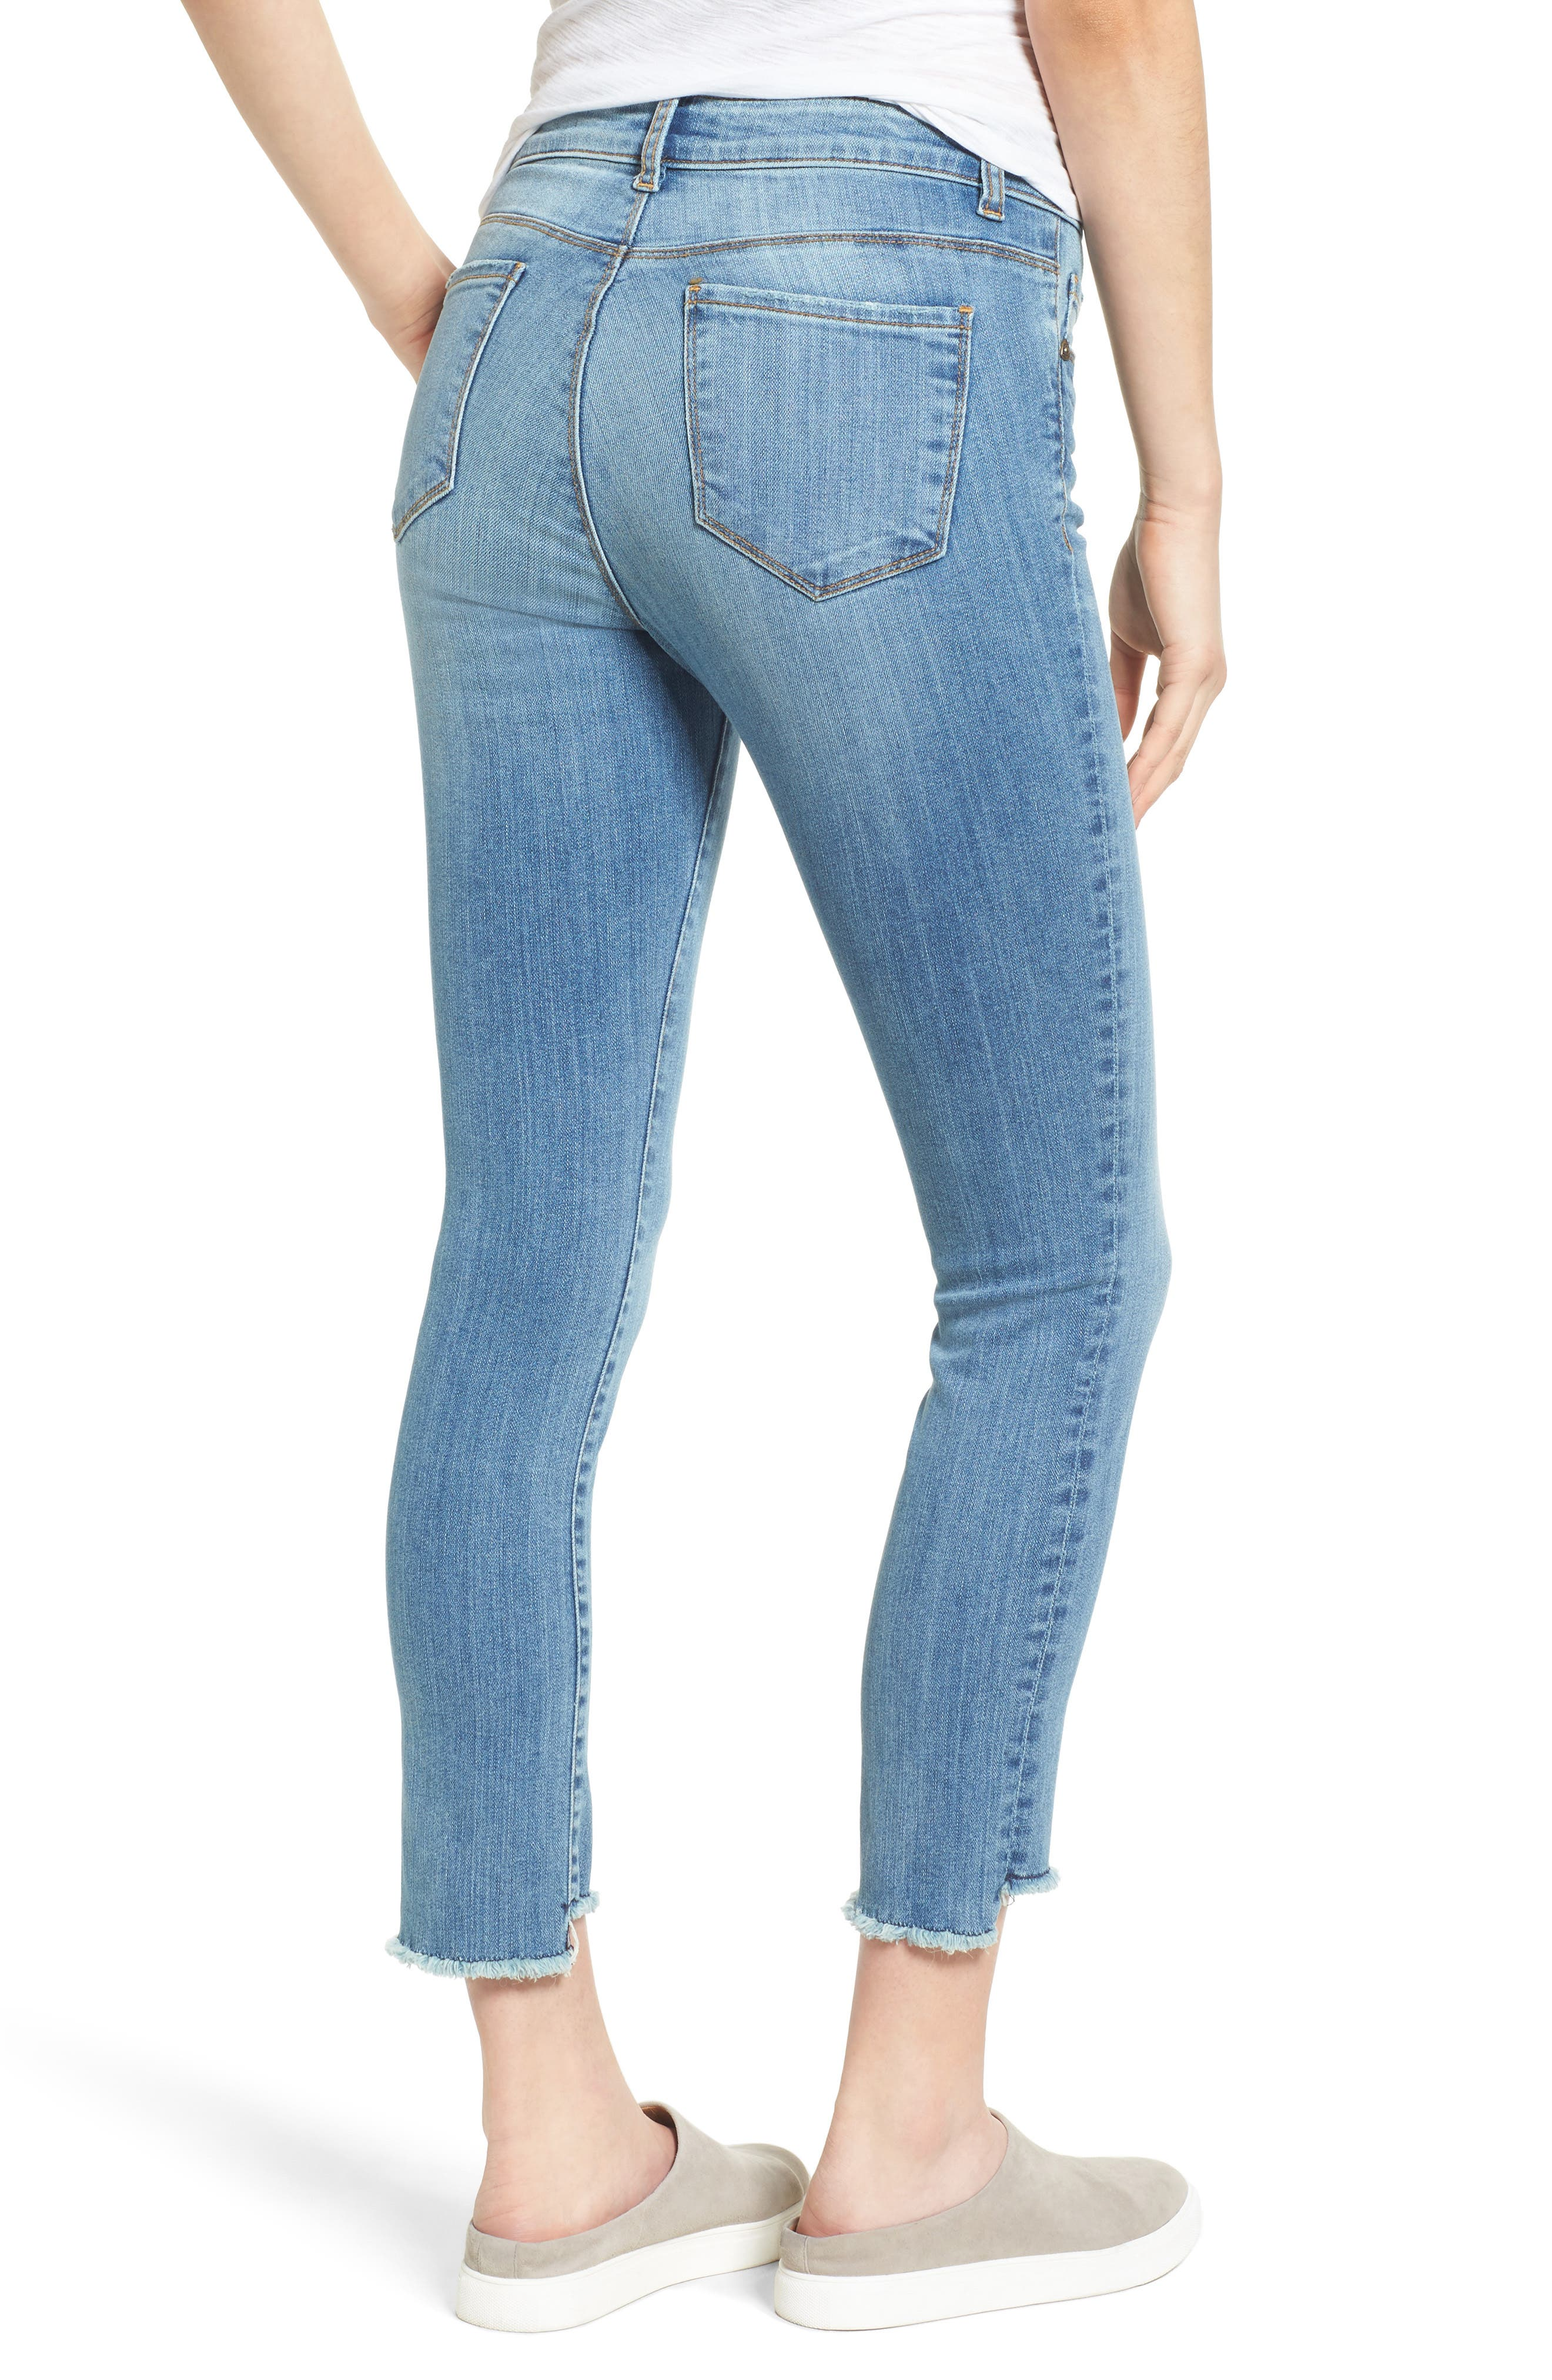 KUT FROM THE KLOTH,                             Reese Frayed Straight Leg Ankle Jeans,                             Alternate thumbnail 2, color,                             426